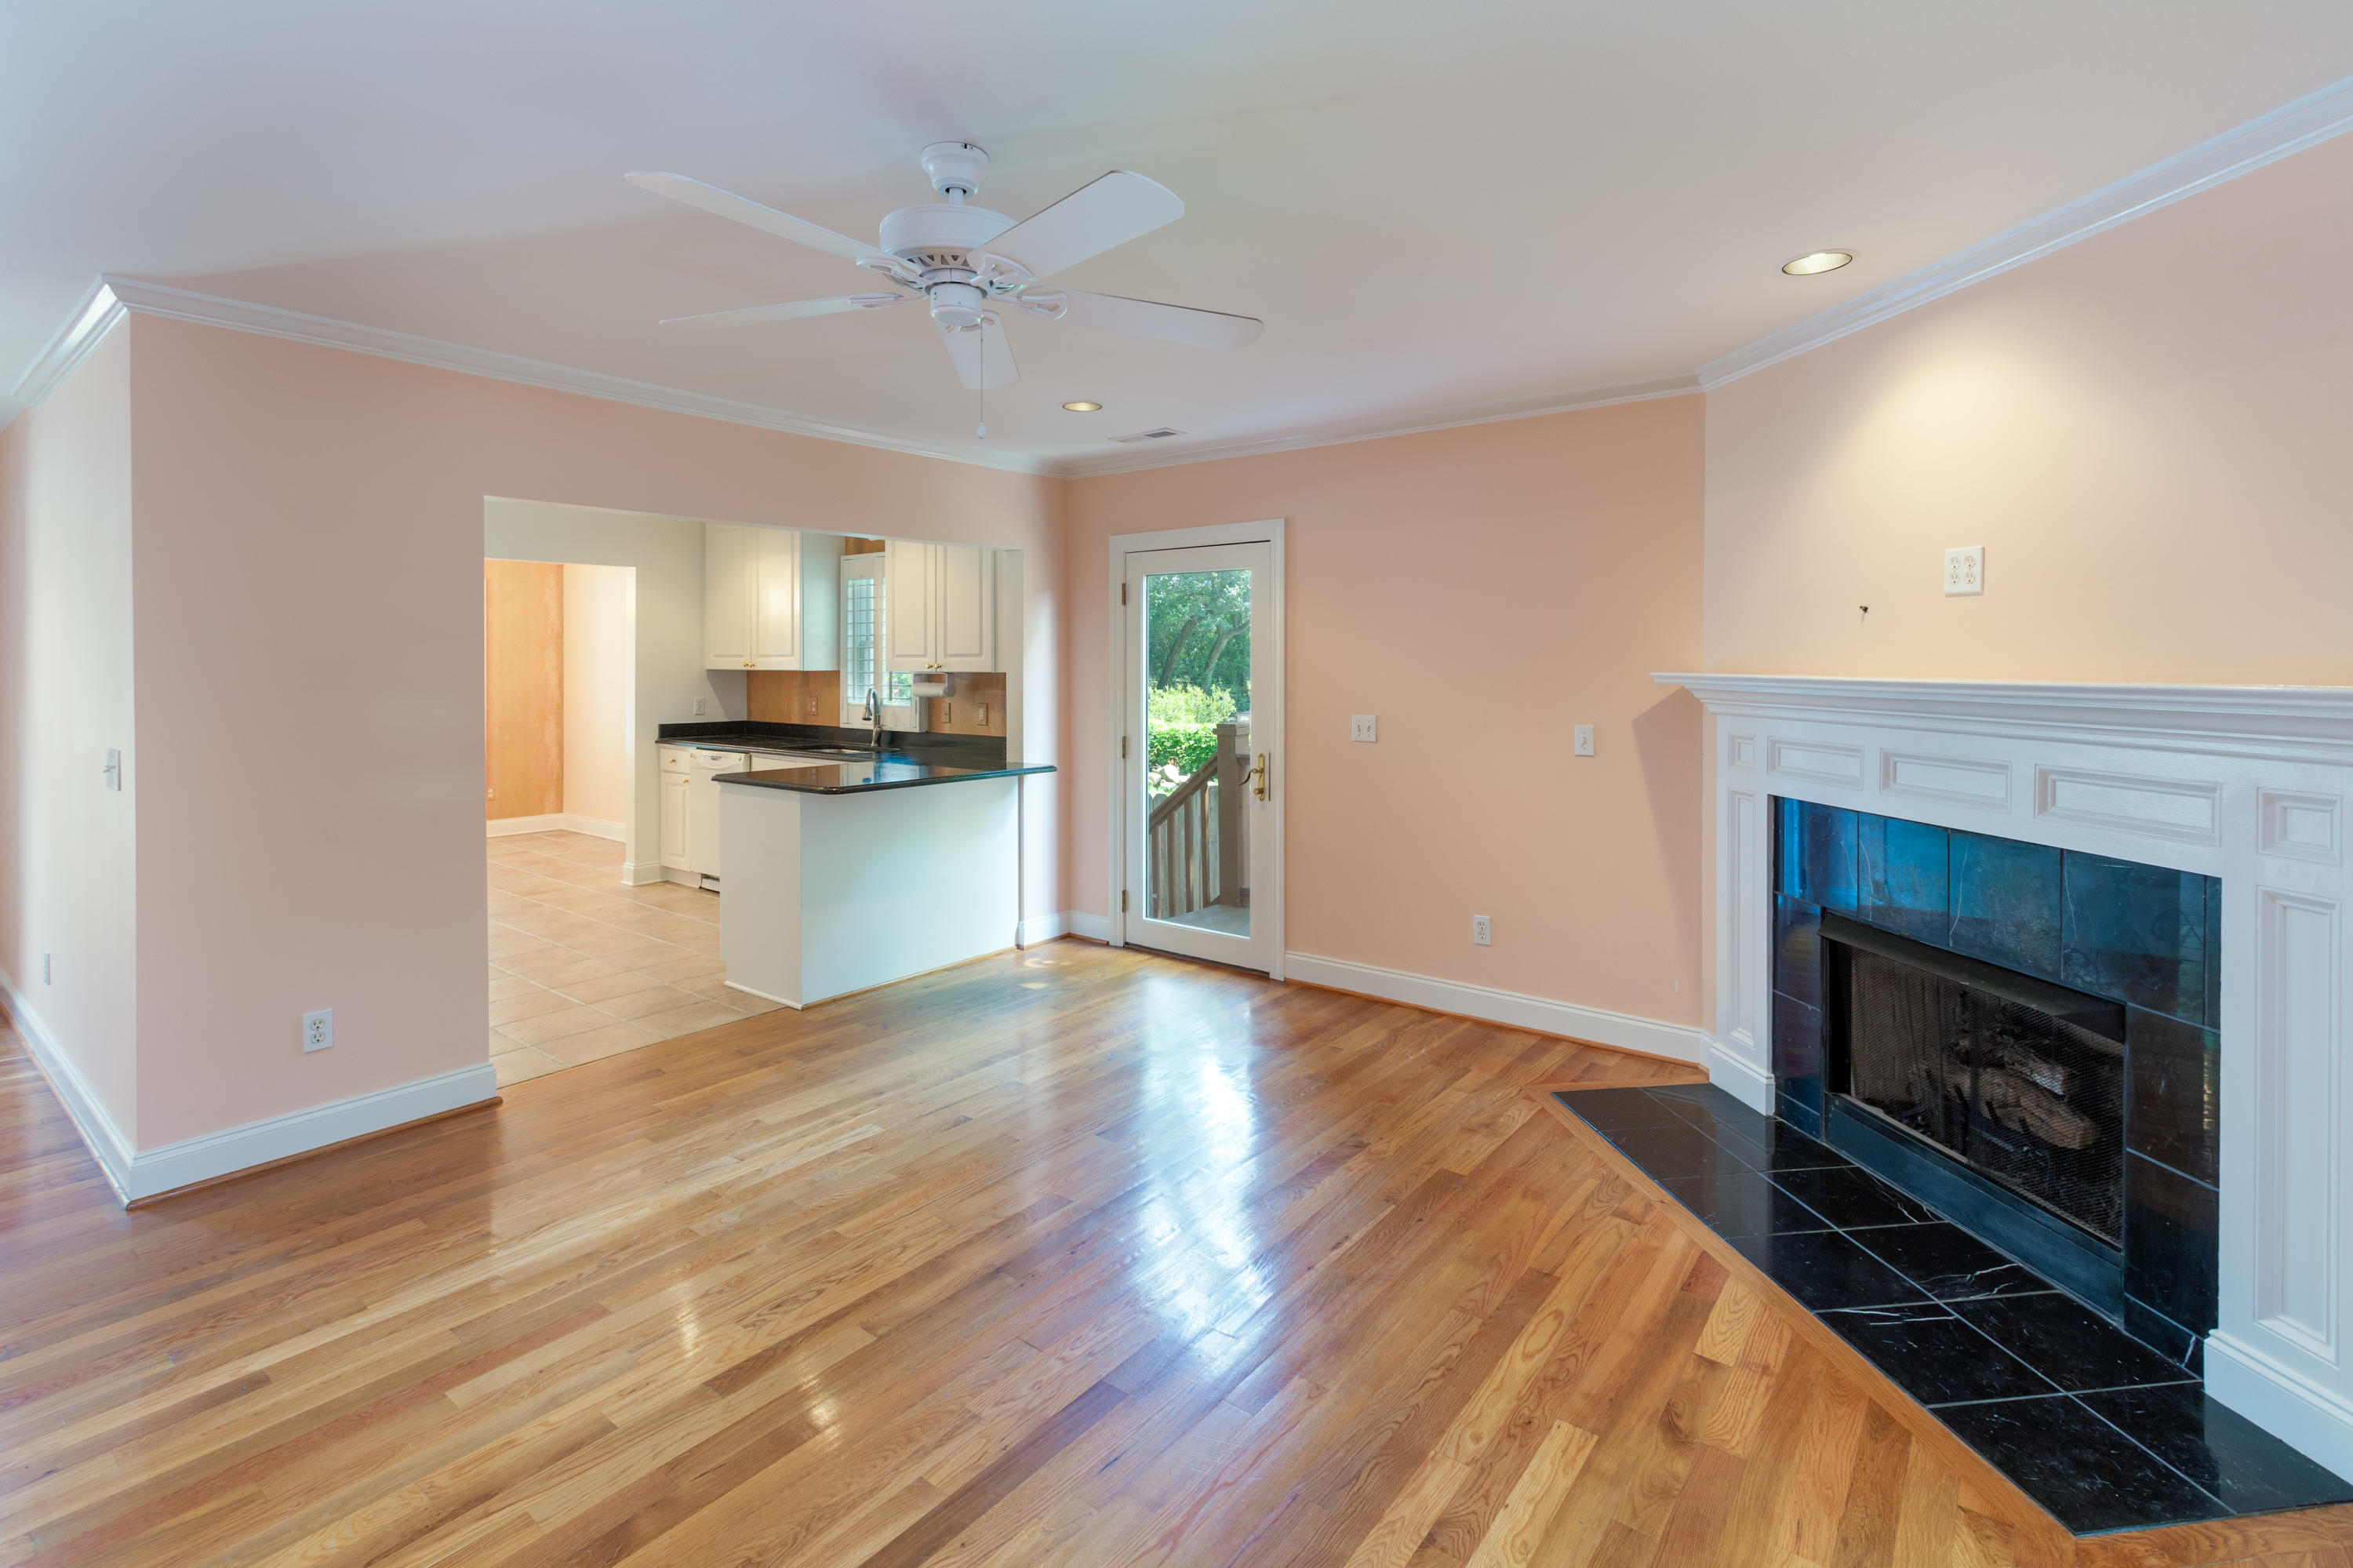 Riverland Terrace Homes For Sale - 2115 Welch, Charleston, SC - 20